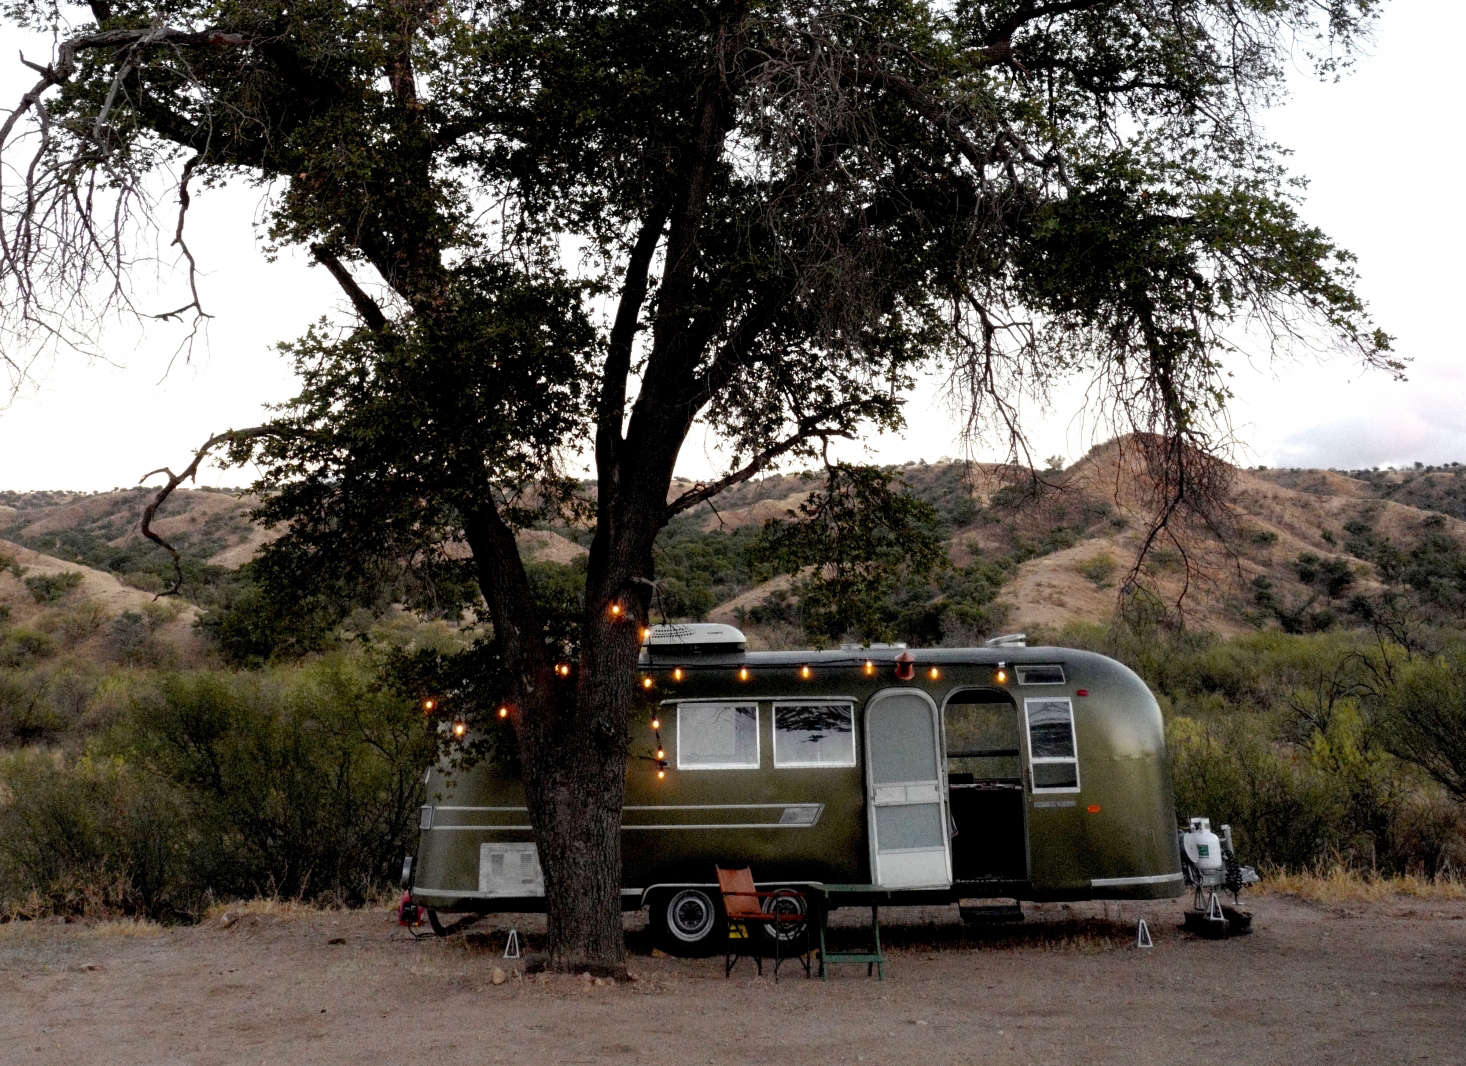 Casamidy on Wheels: An Idiosyncratic Airstream Rehab, Victorian Card Table Included